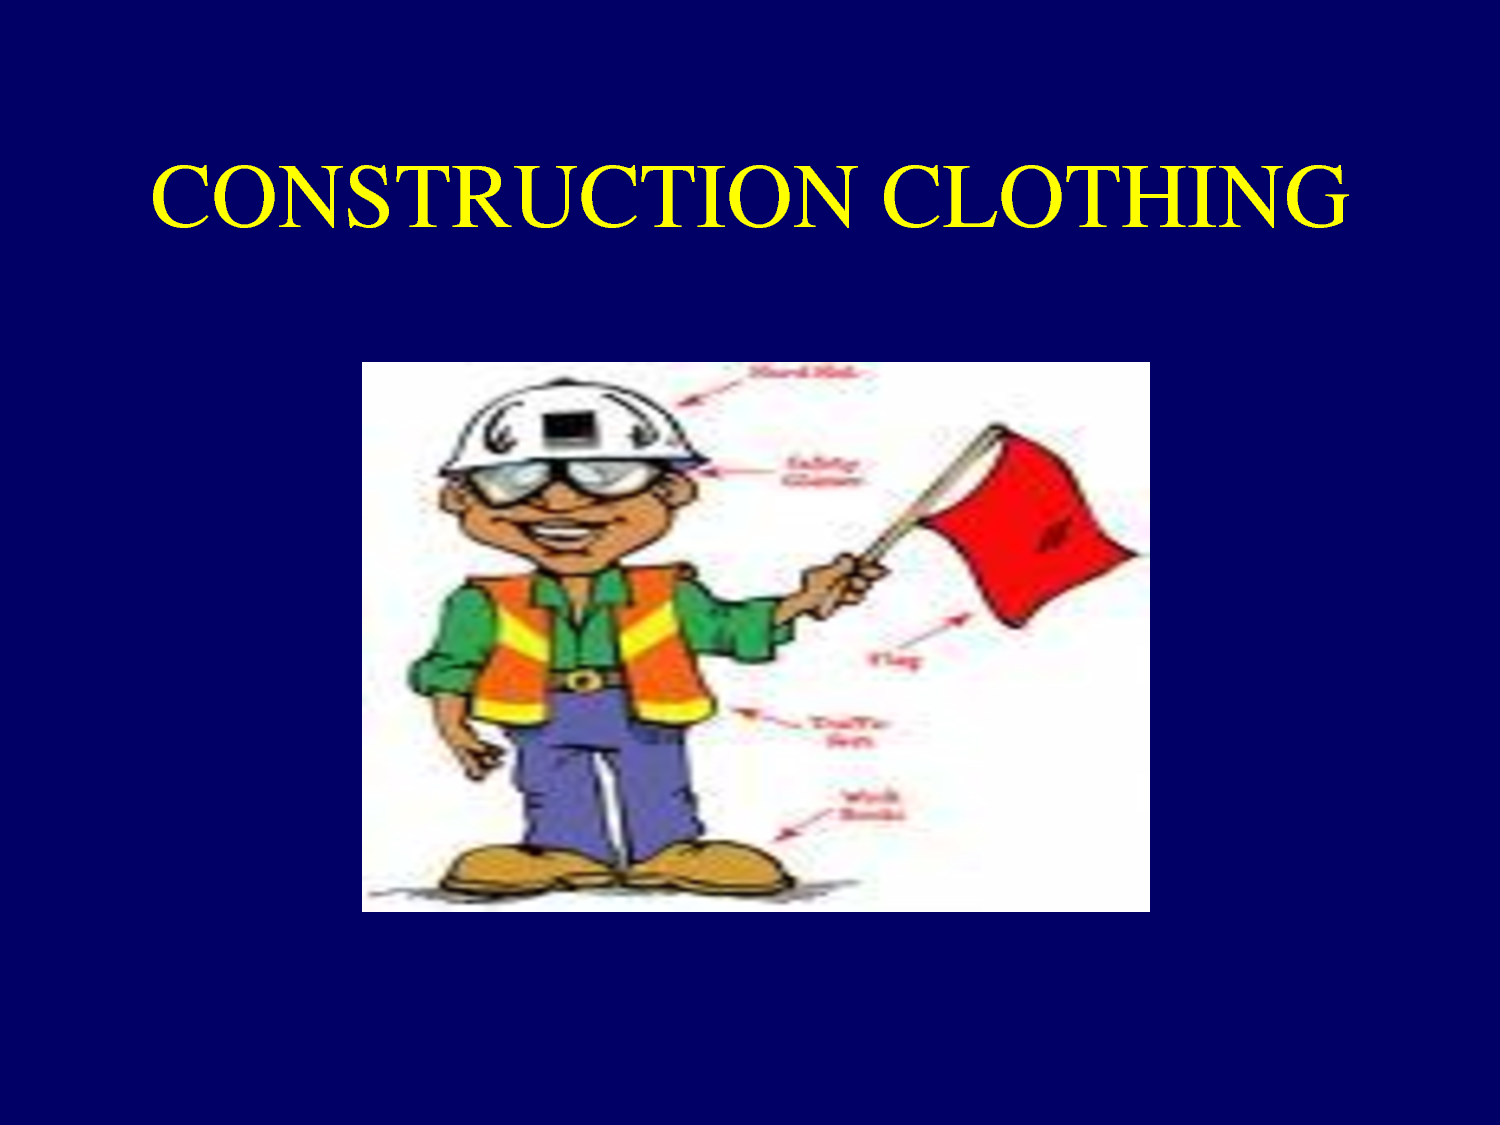 Certificate in Clothing Construction